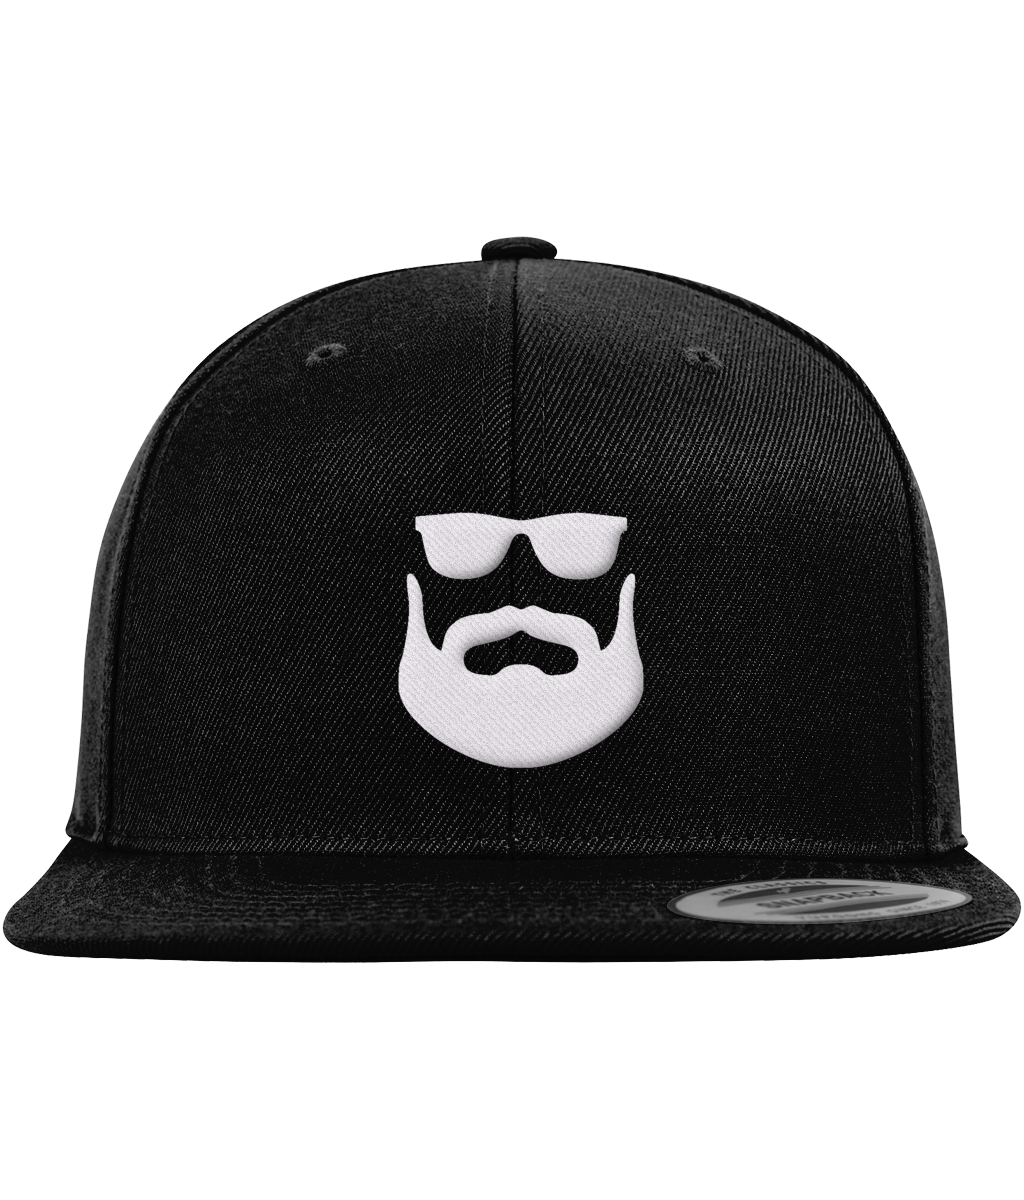 The Boot Camper Snapback